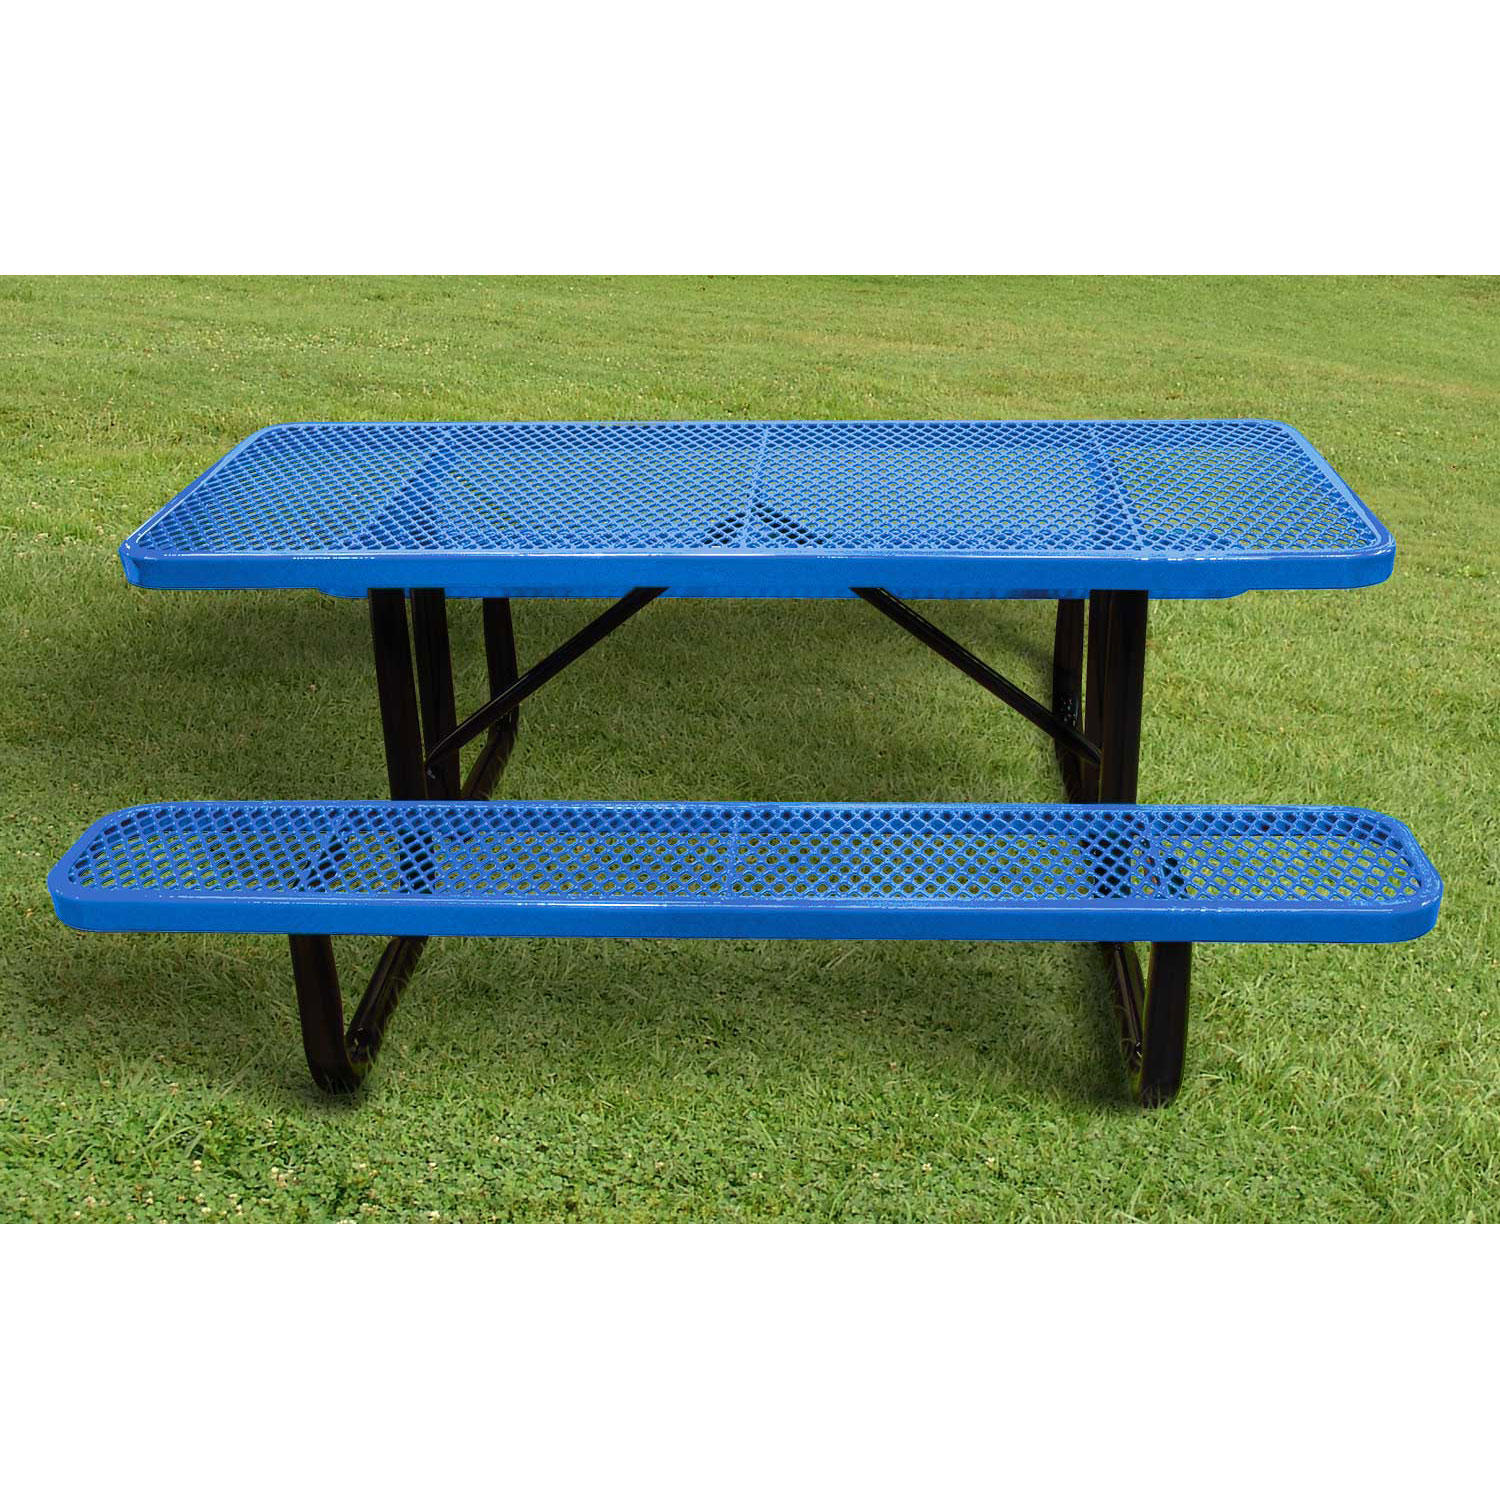 Leisure Craft 6' Rectangular Expanded Metal Picnic Table